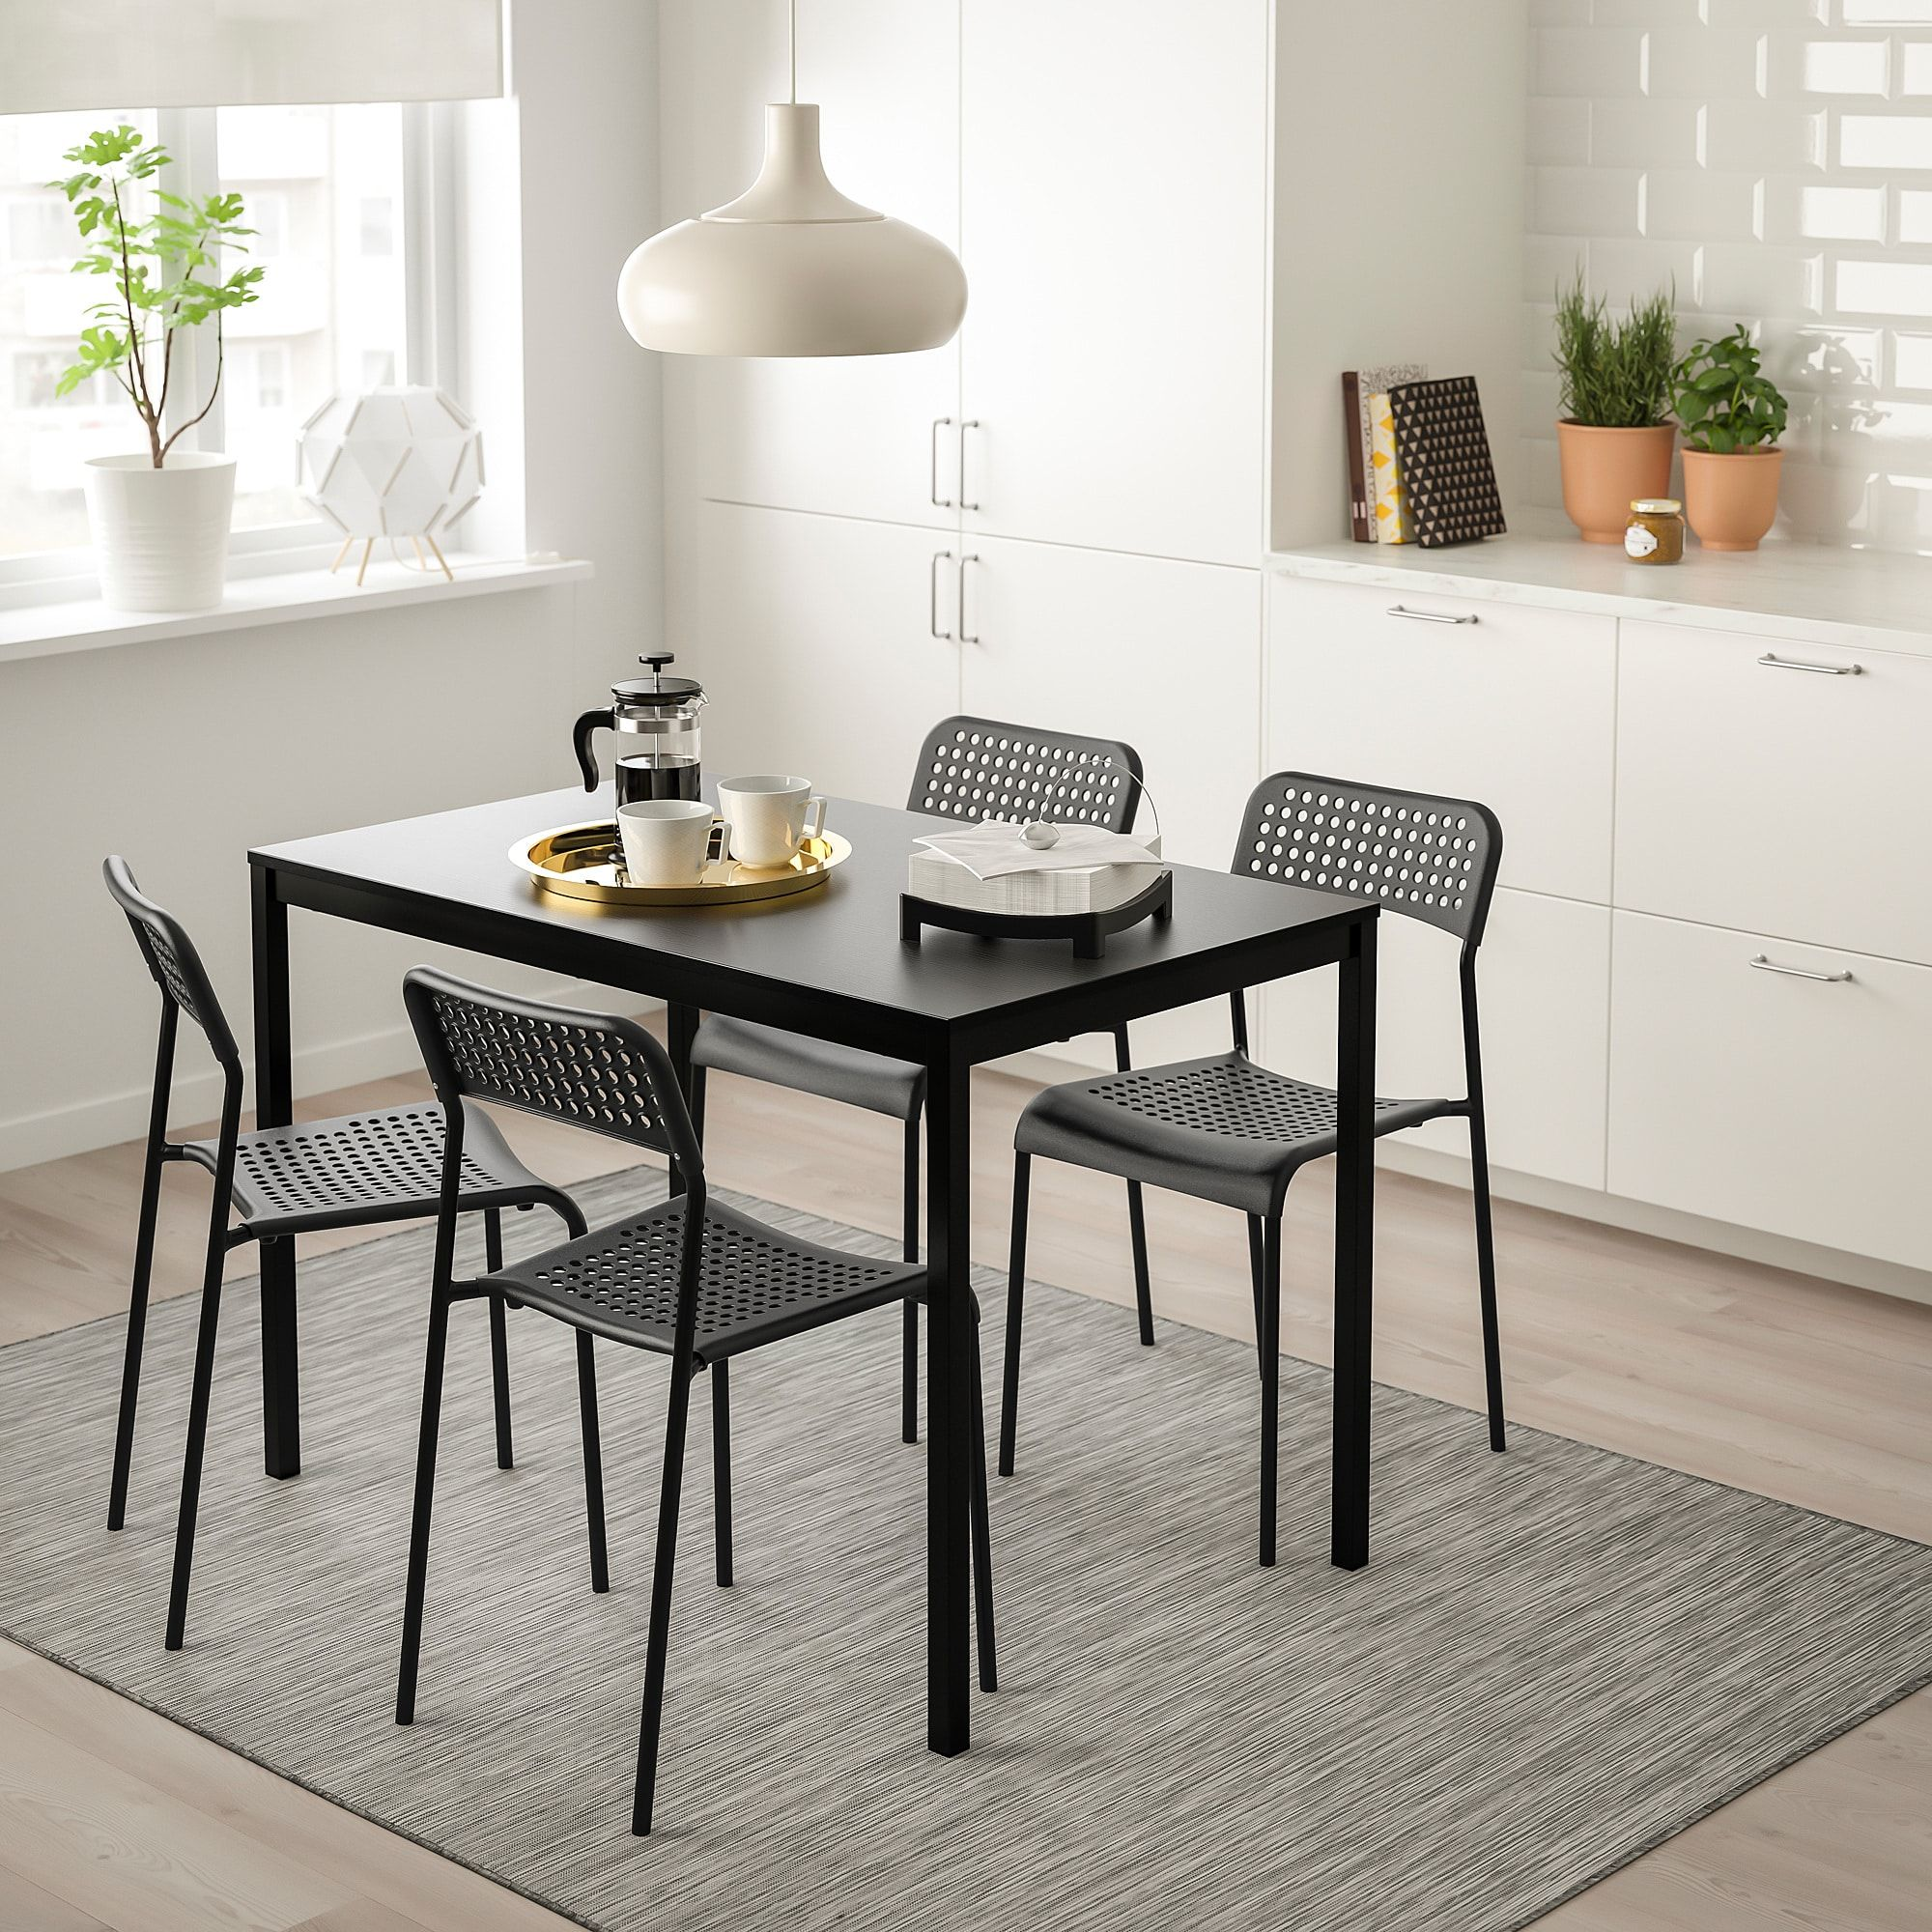 Ikea Tarendo Adde Black Table And 4 Chairs Ikea Table Chair